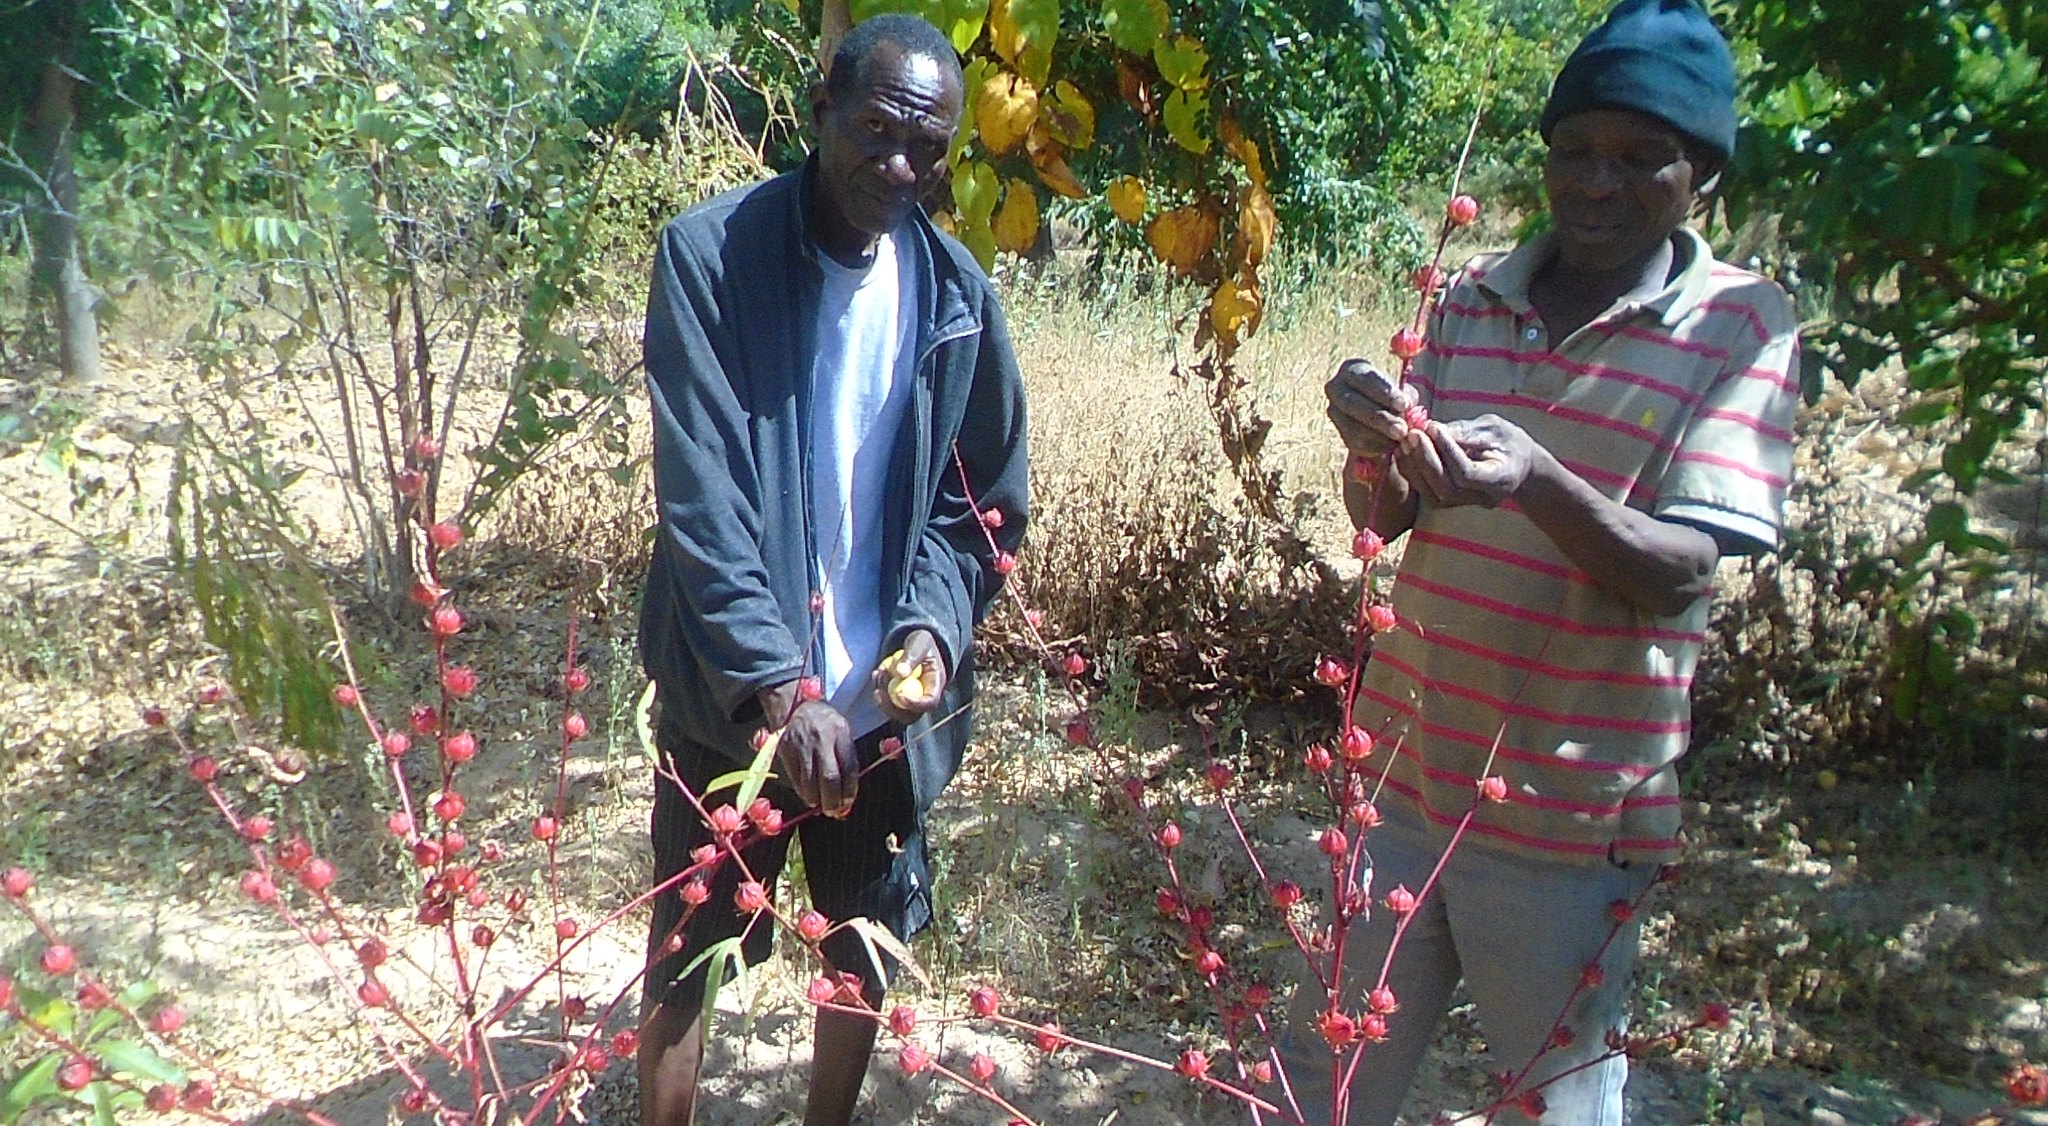 MEDICINAL PLANTS SOURCE OF HOPE | Malawi Project